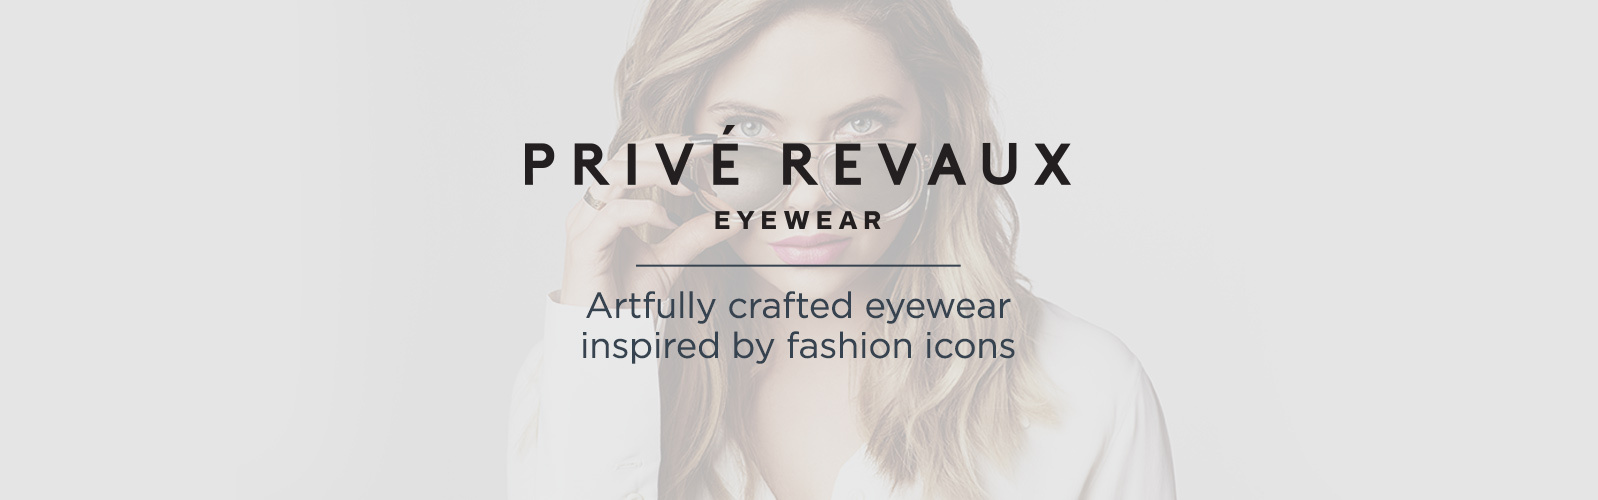 Privé Revaux  — Artfully crafted eyewear inspired by fashion icons